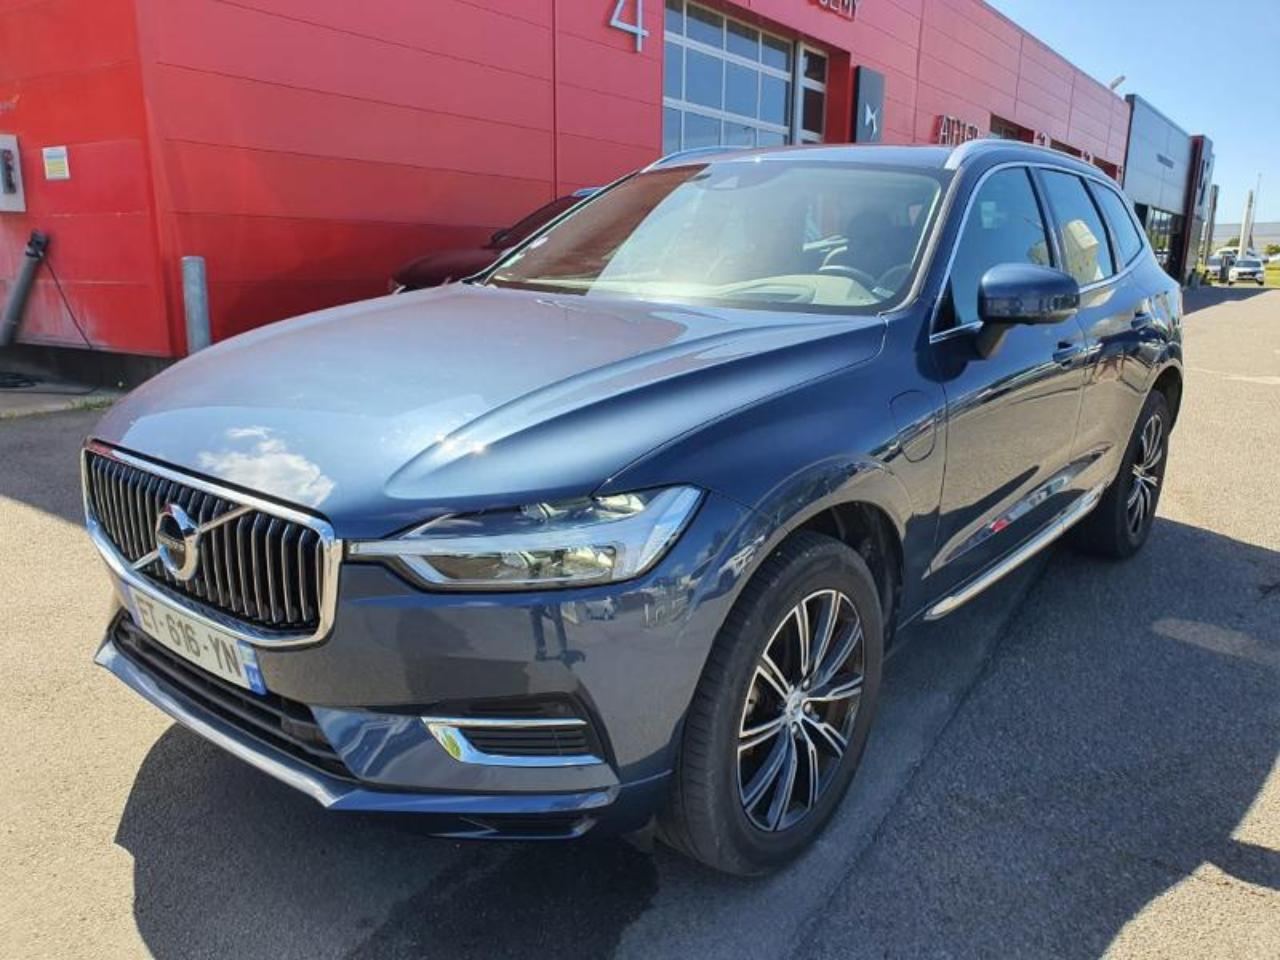 Volvo XC60 T8 Twin Engine 320 + 87ch Inscription Geartronic